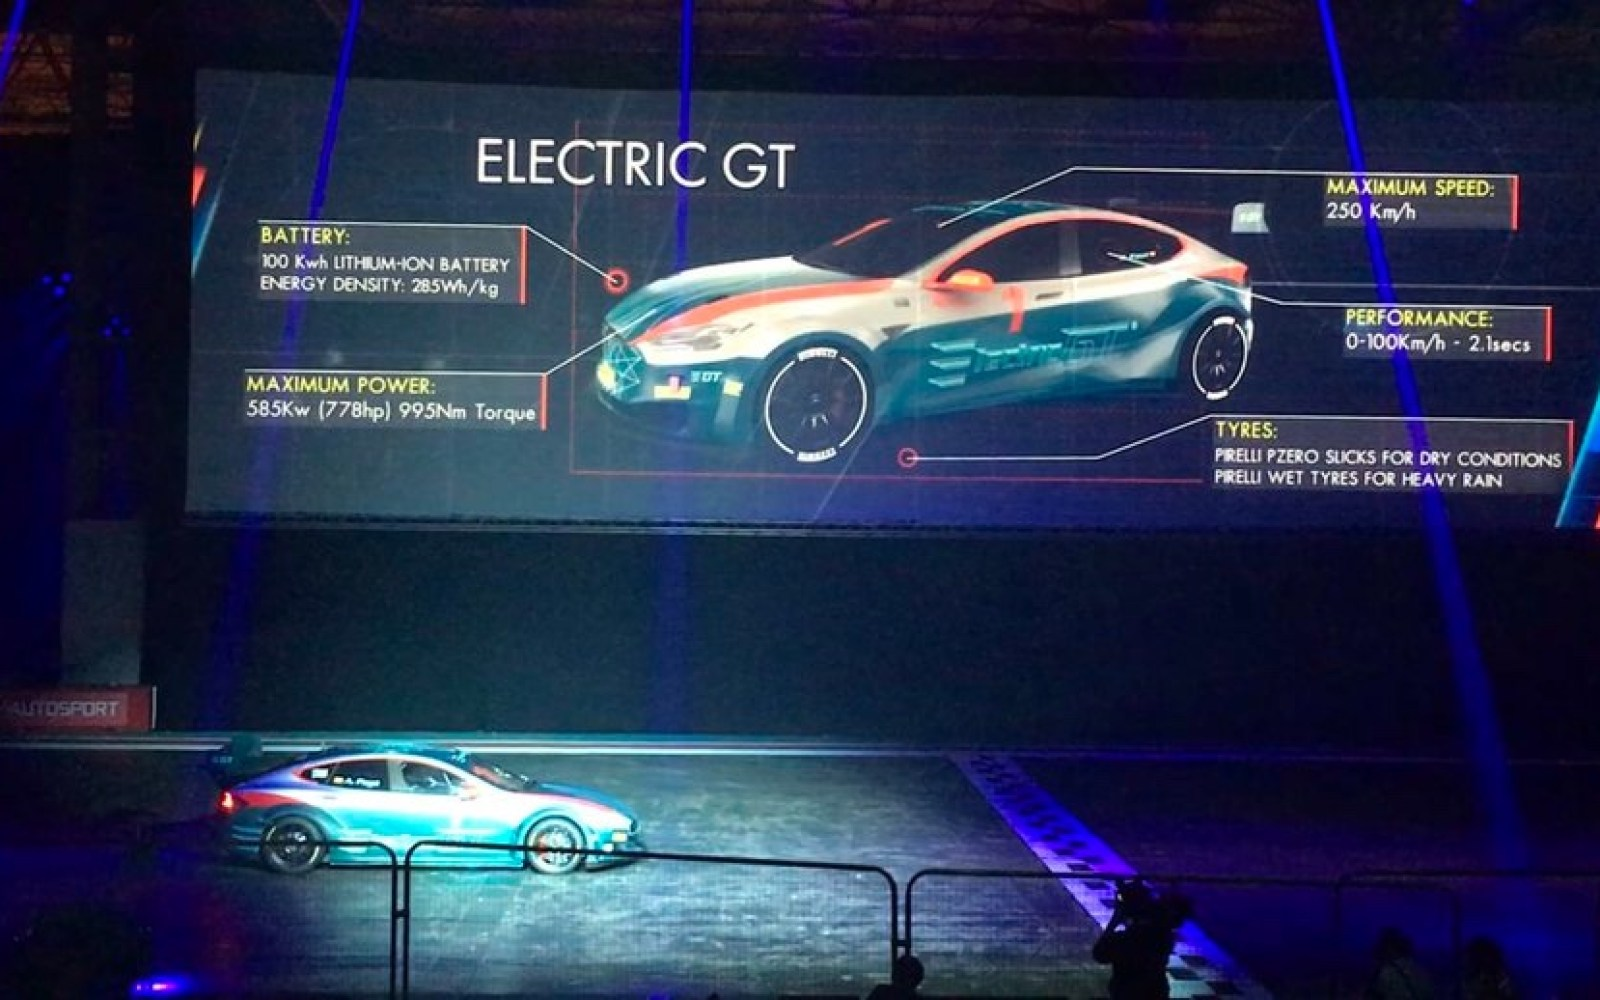 Electric GT unveils stripped-down Tesla Model S P100D with 2.0-sec 0 to 60 mph acceleration